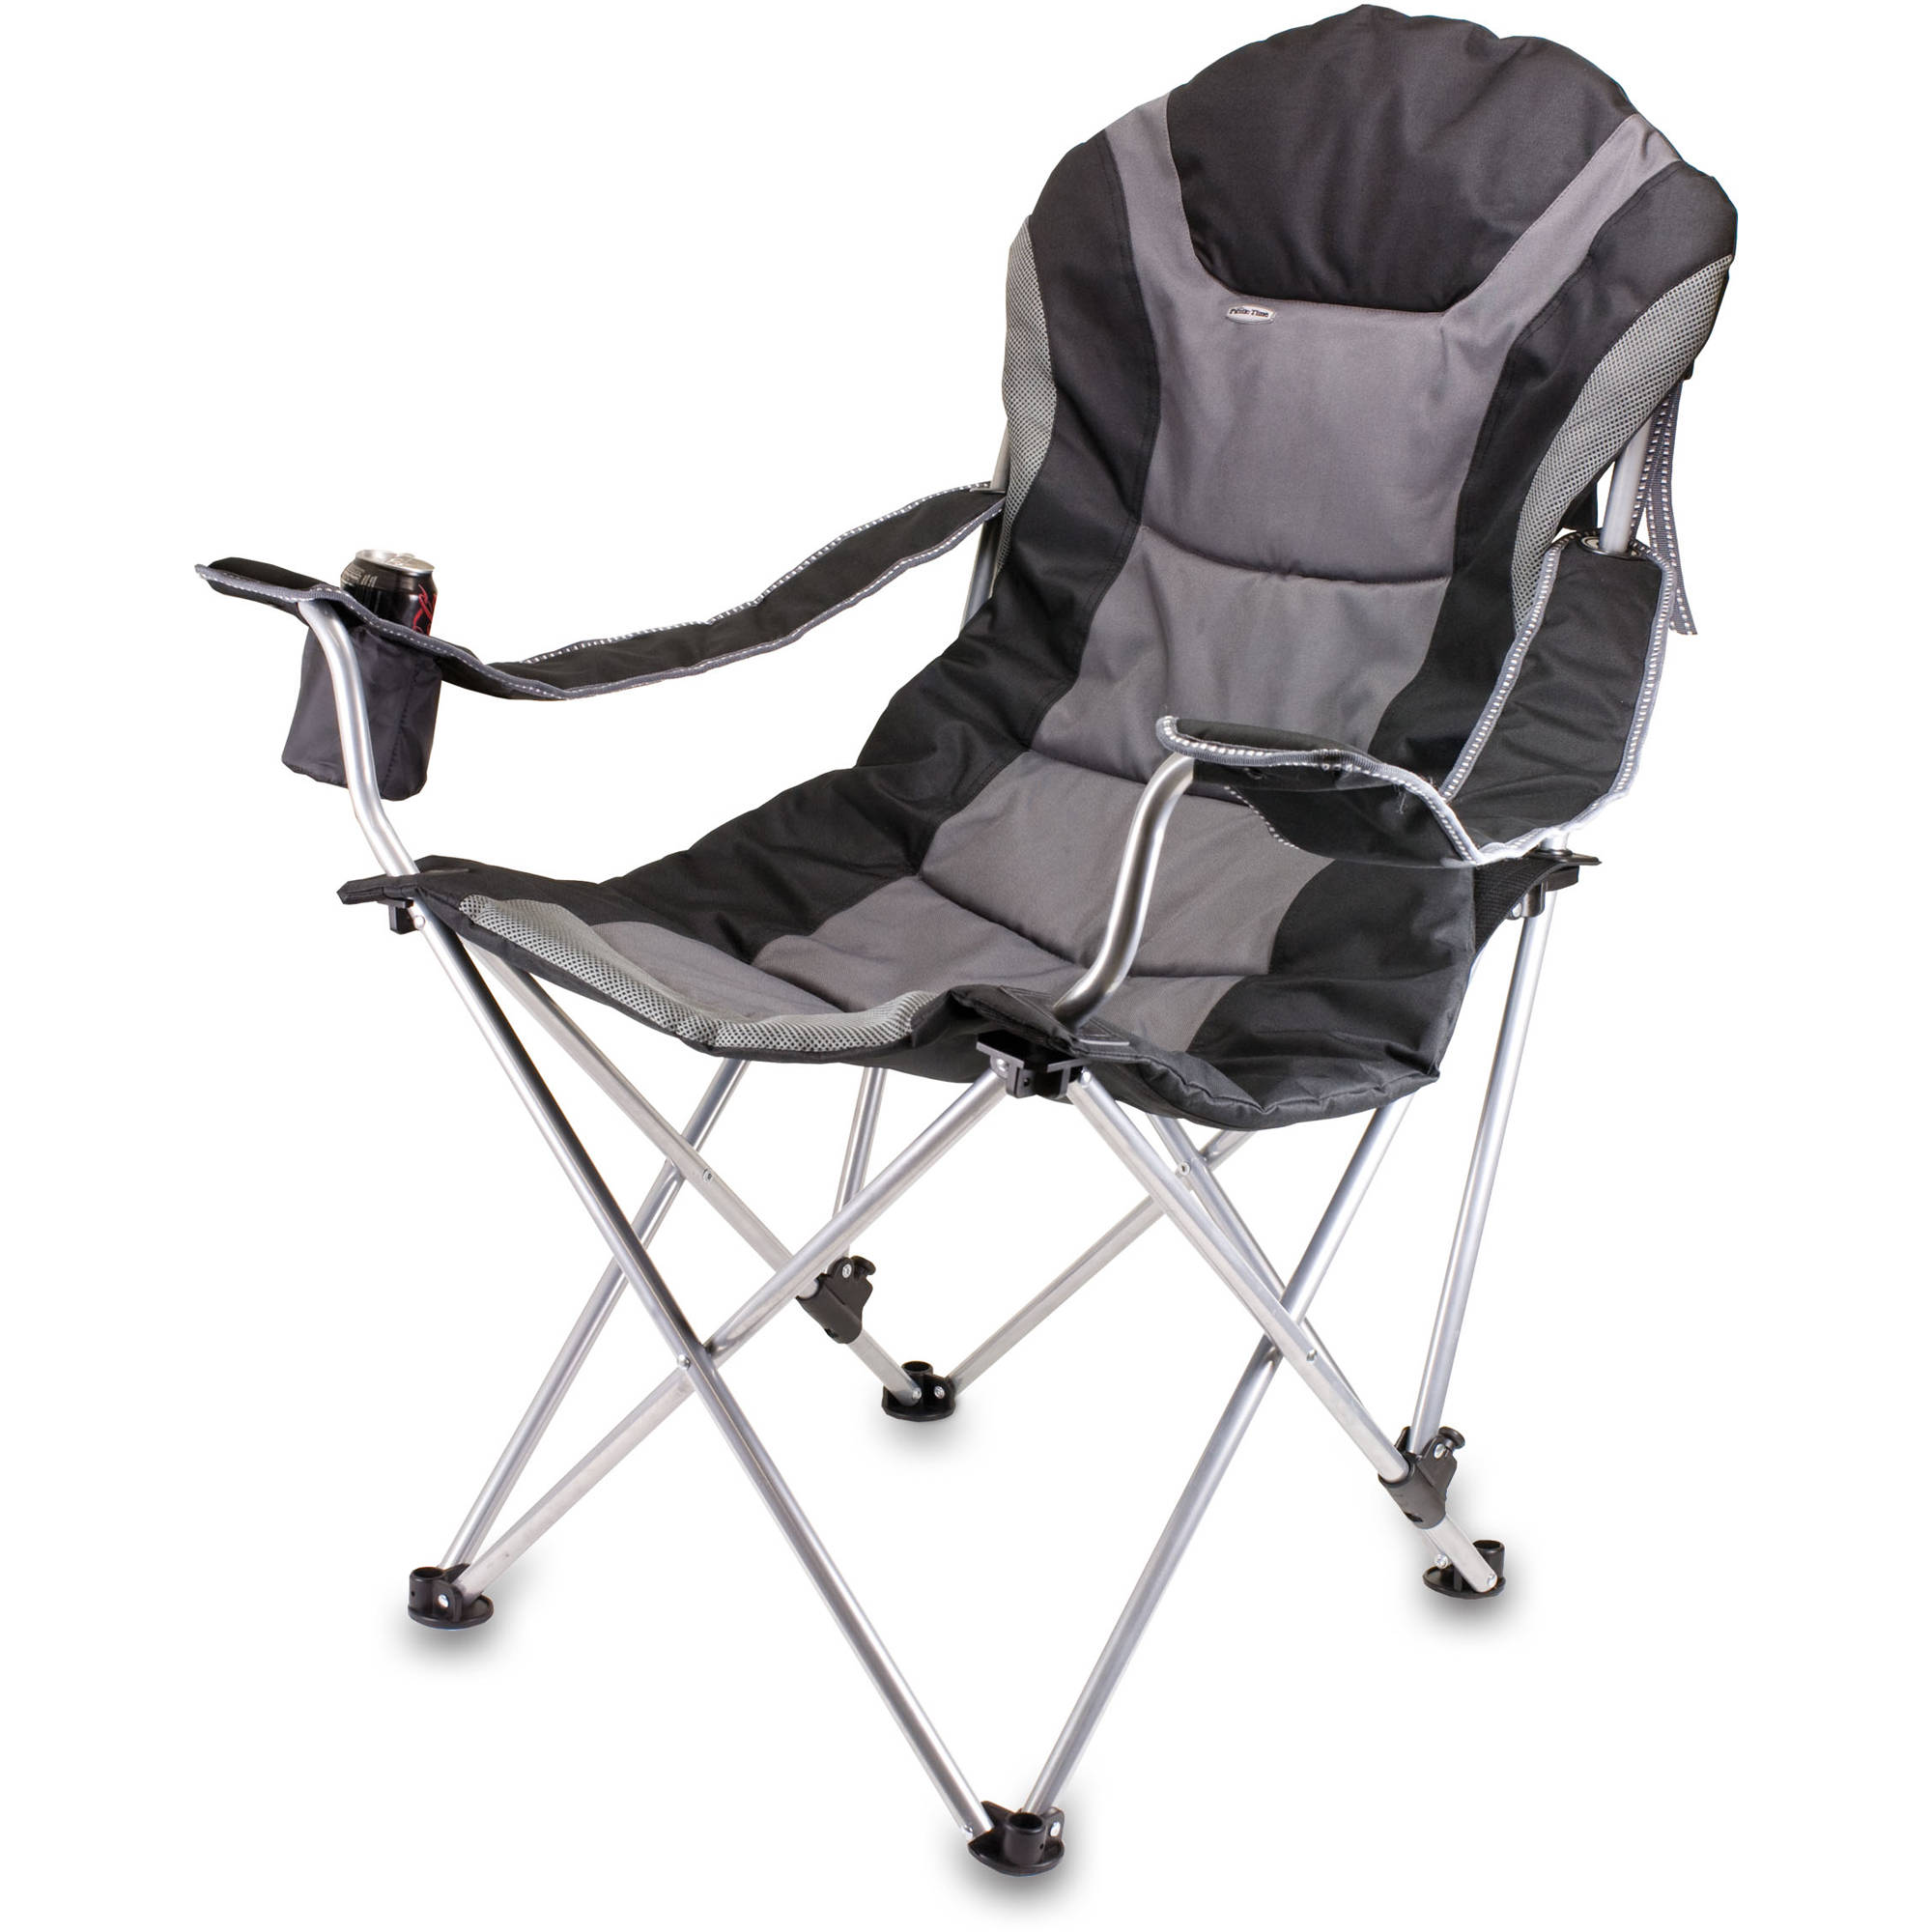 folding picnic chairs b q one and a half chair sleeper time reclining camp 803 00 175 000 andh photo